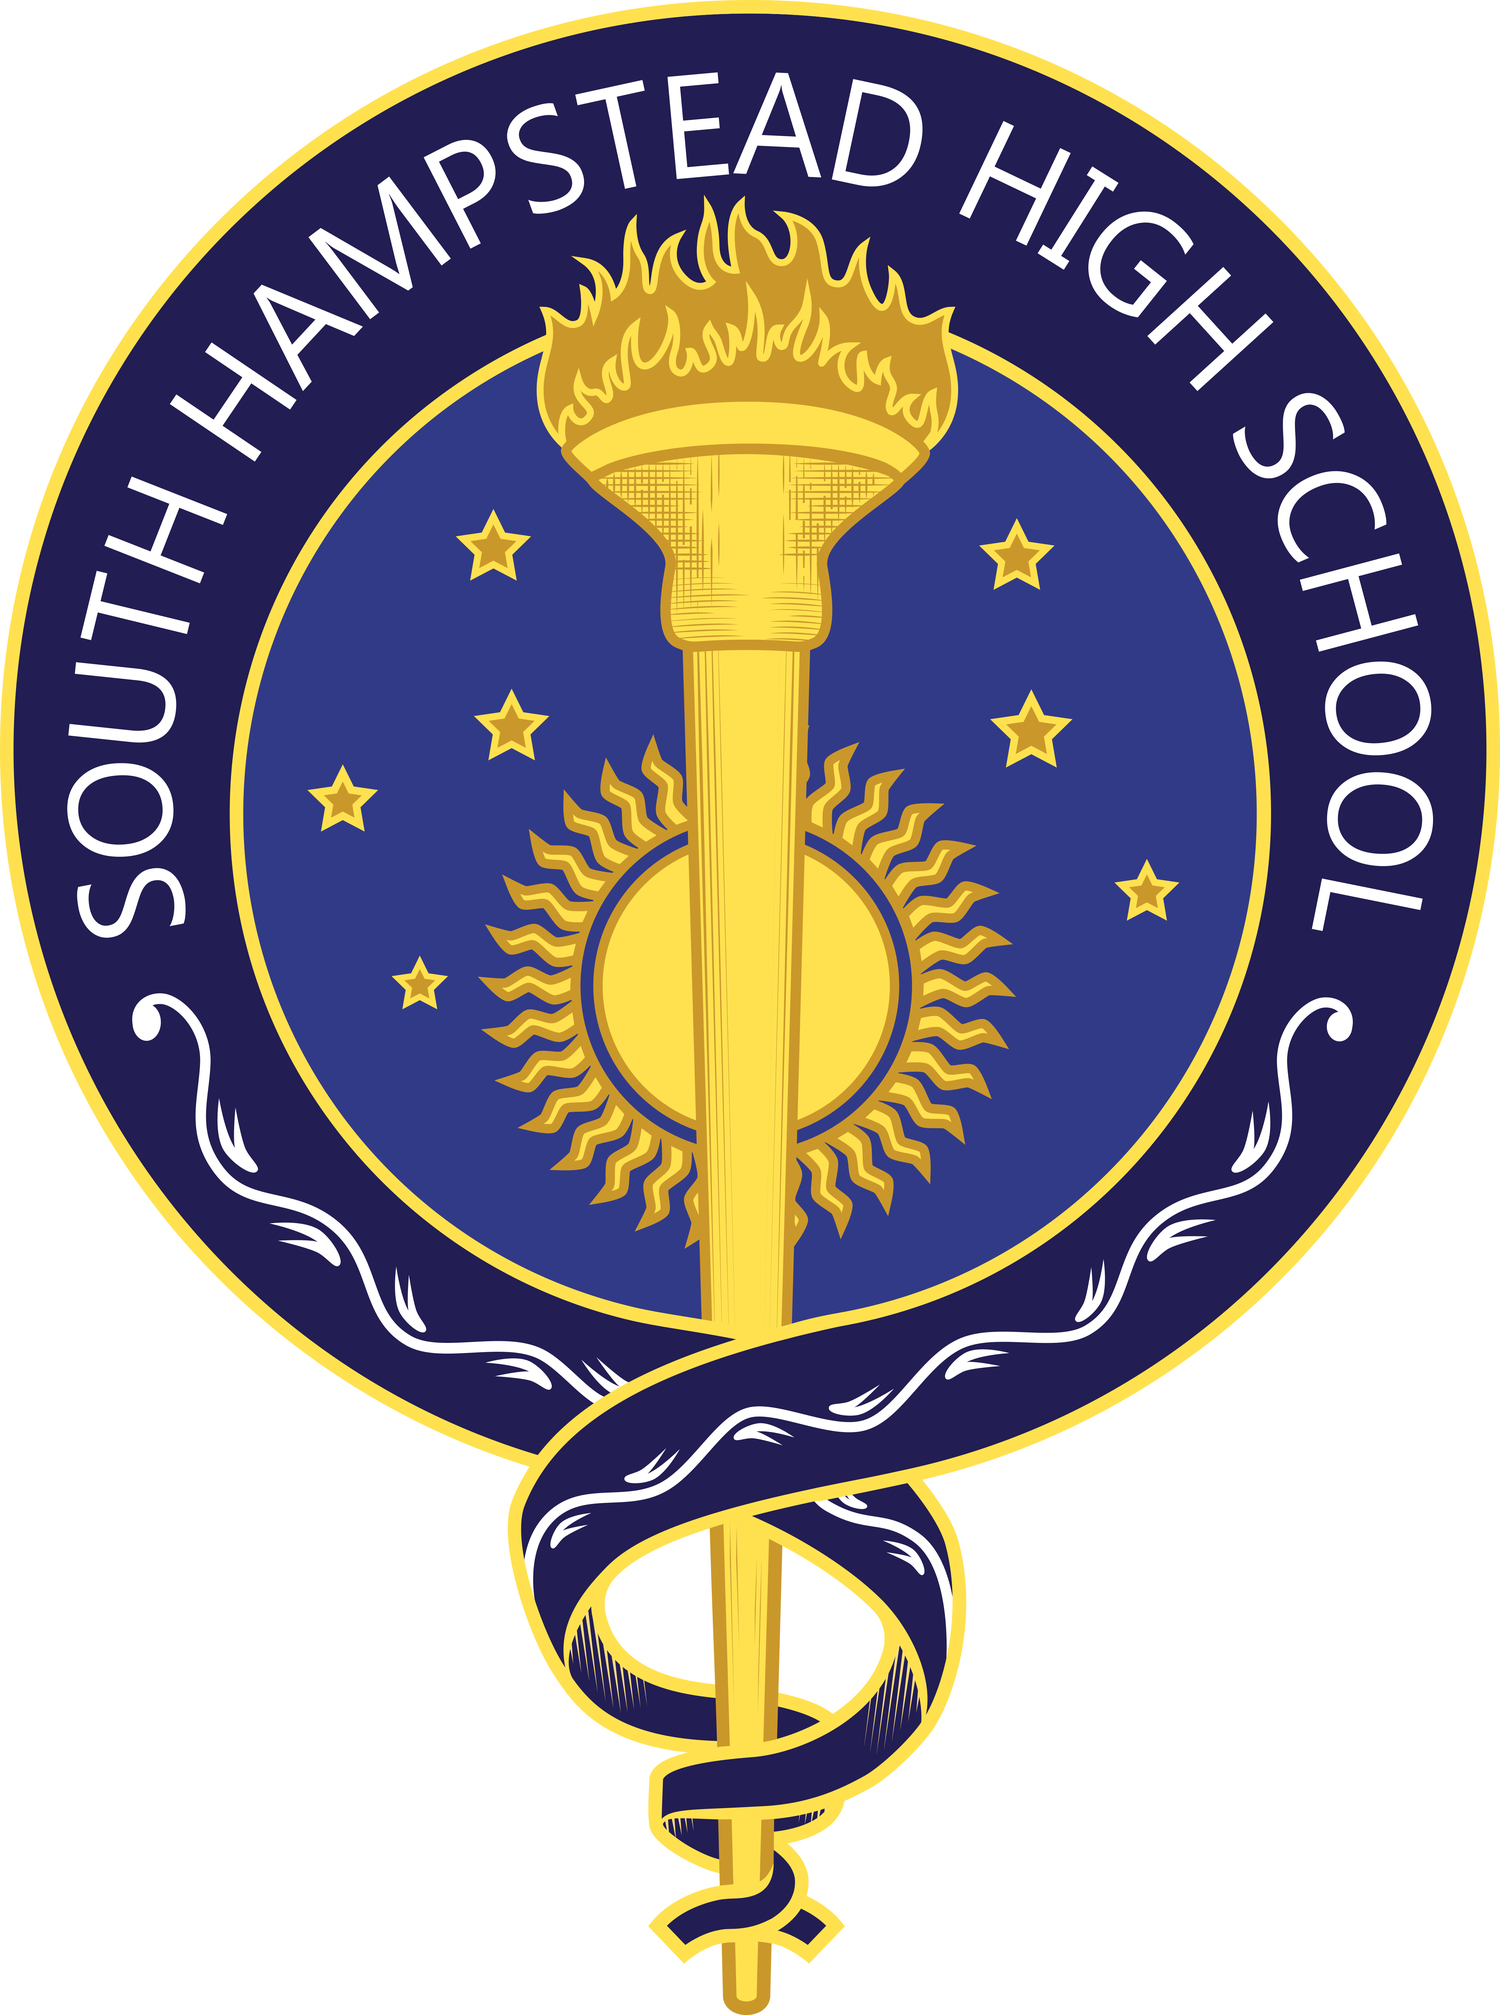 Events at South Hampstead High School